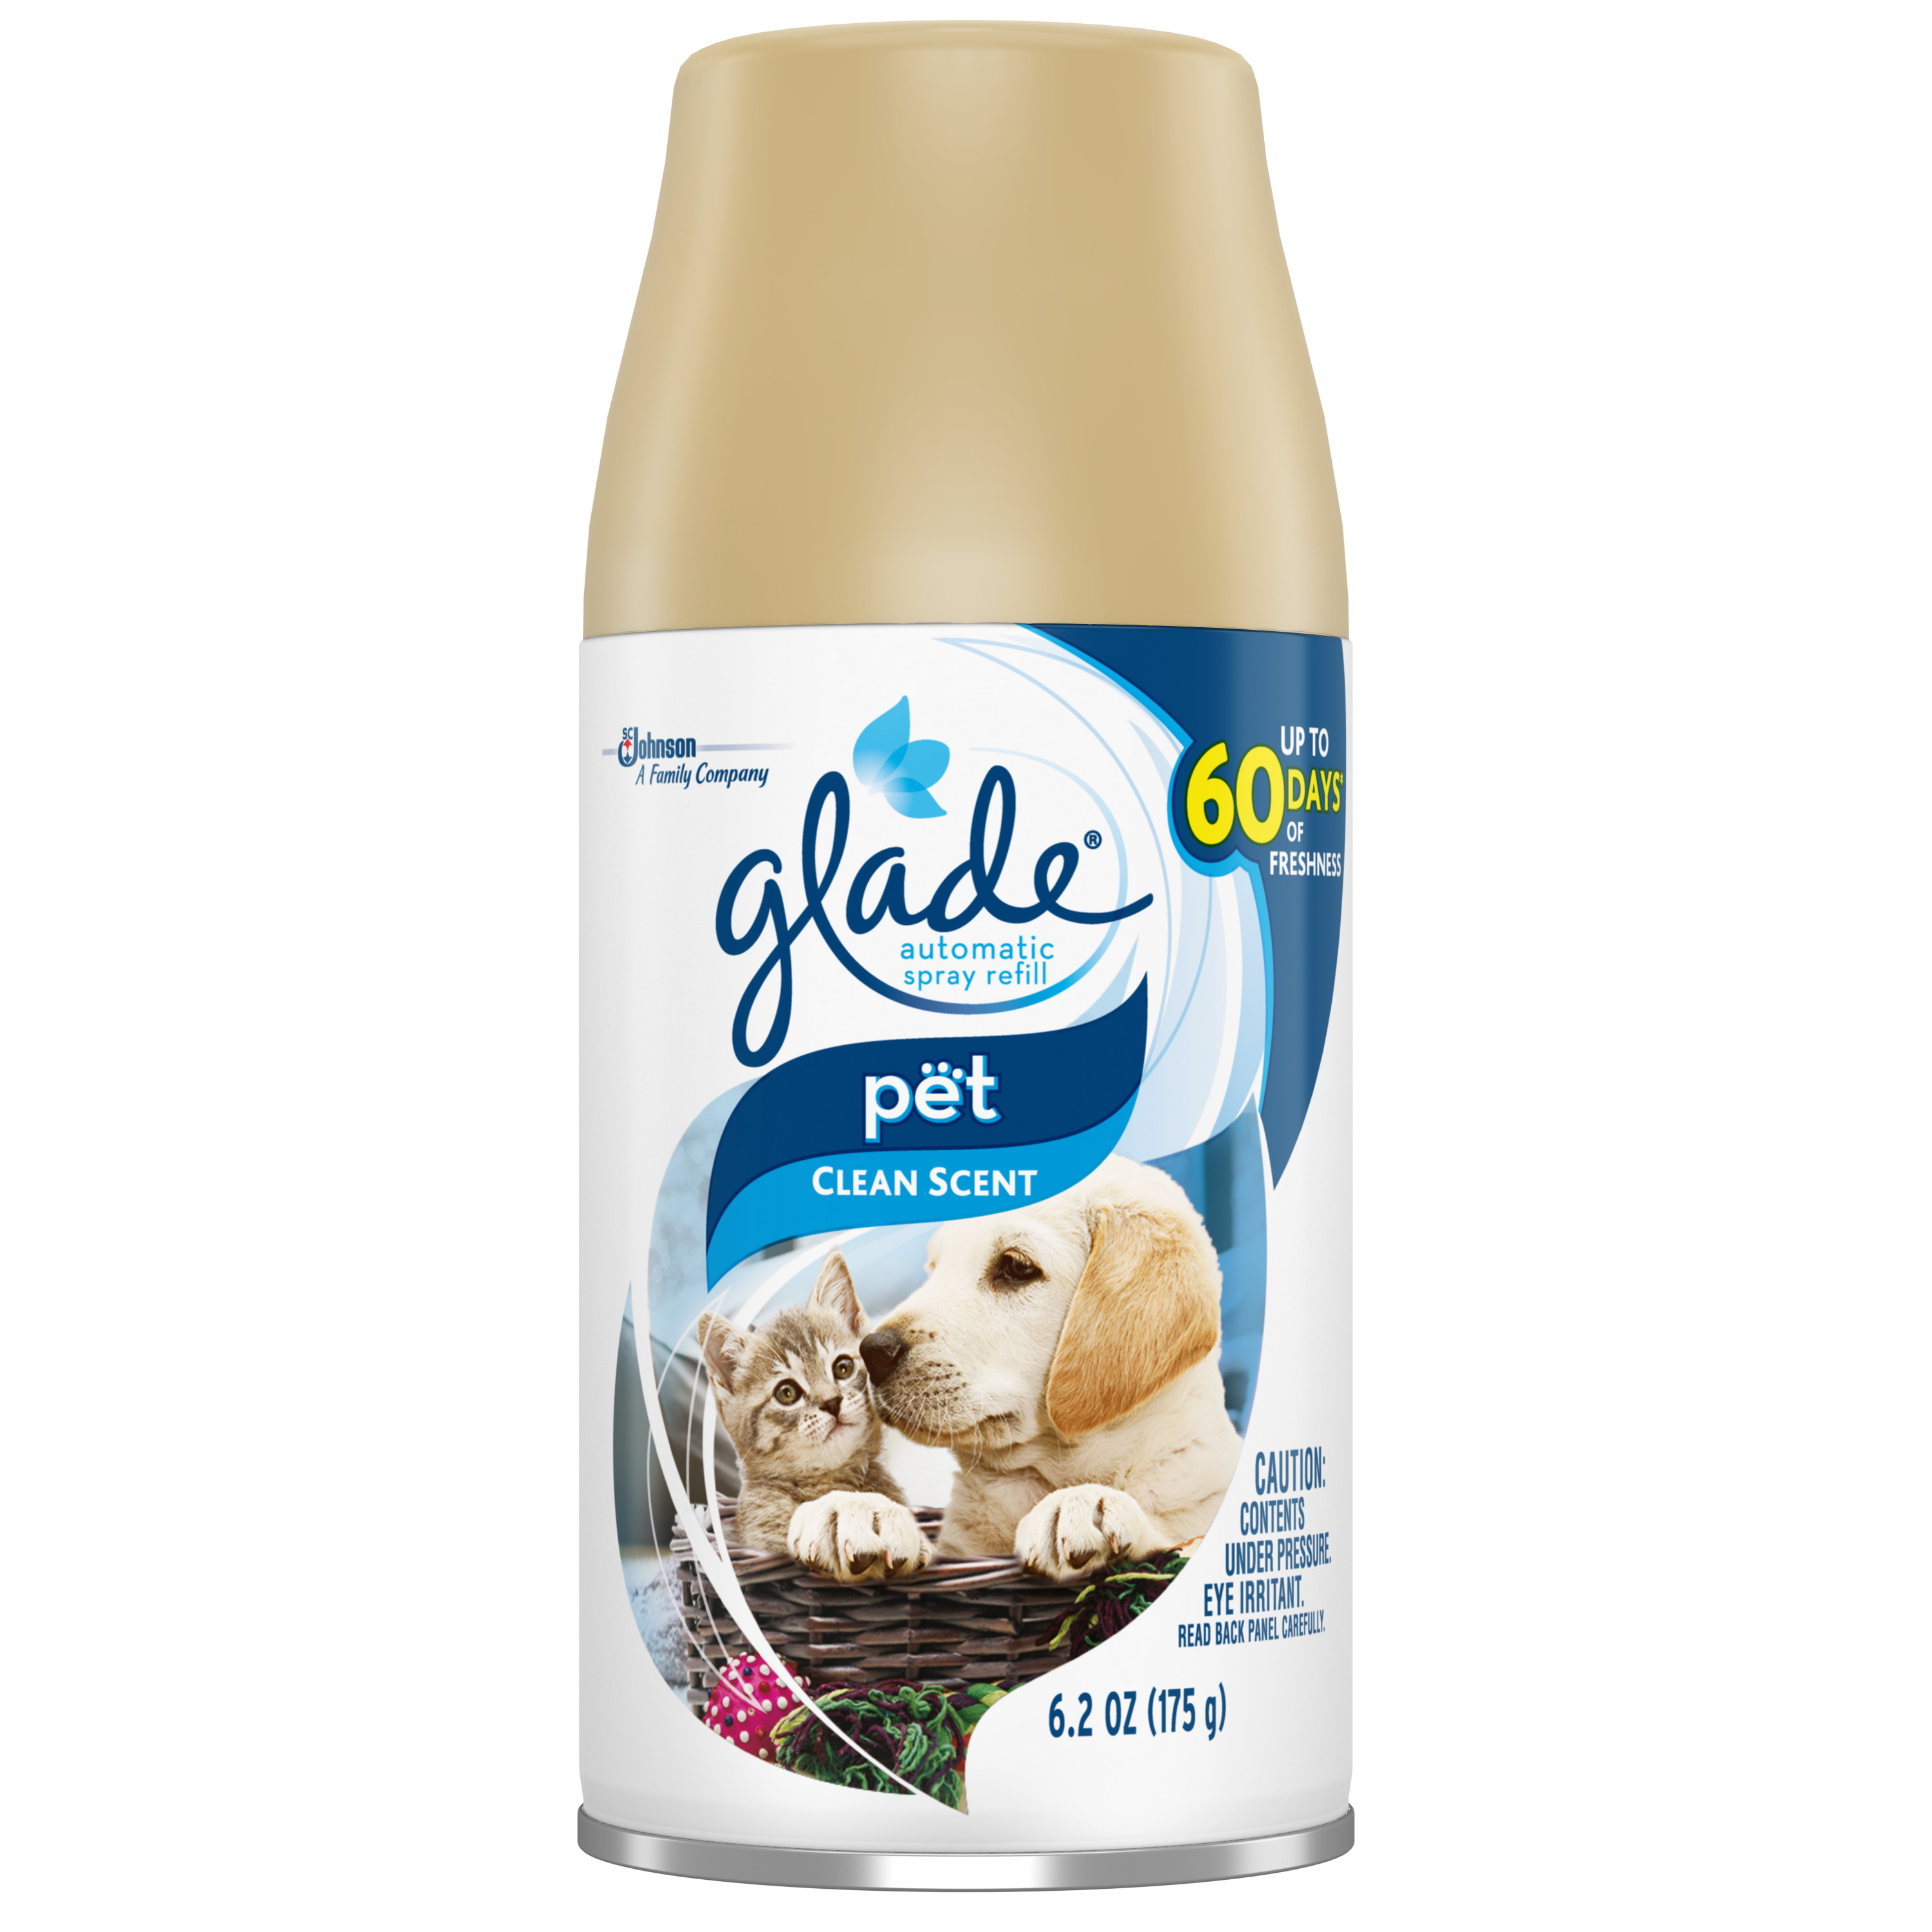 Glade Automatic Spray Air Freshener Refill, Pet Clean Scent, 6.2 oz